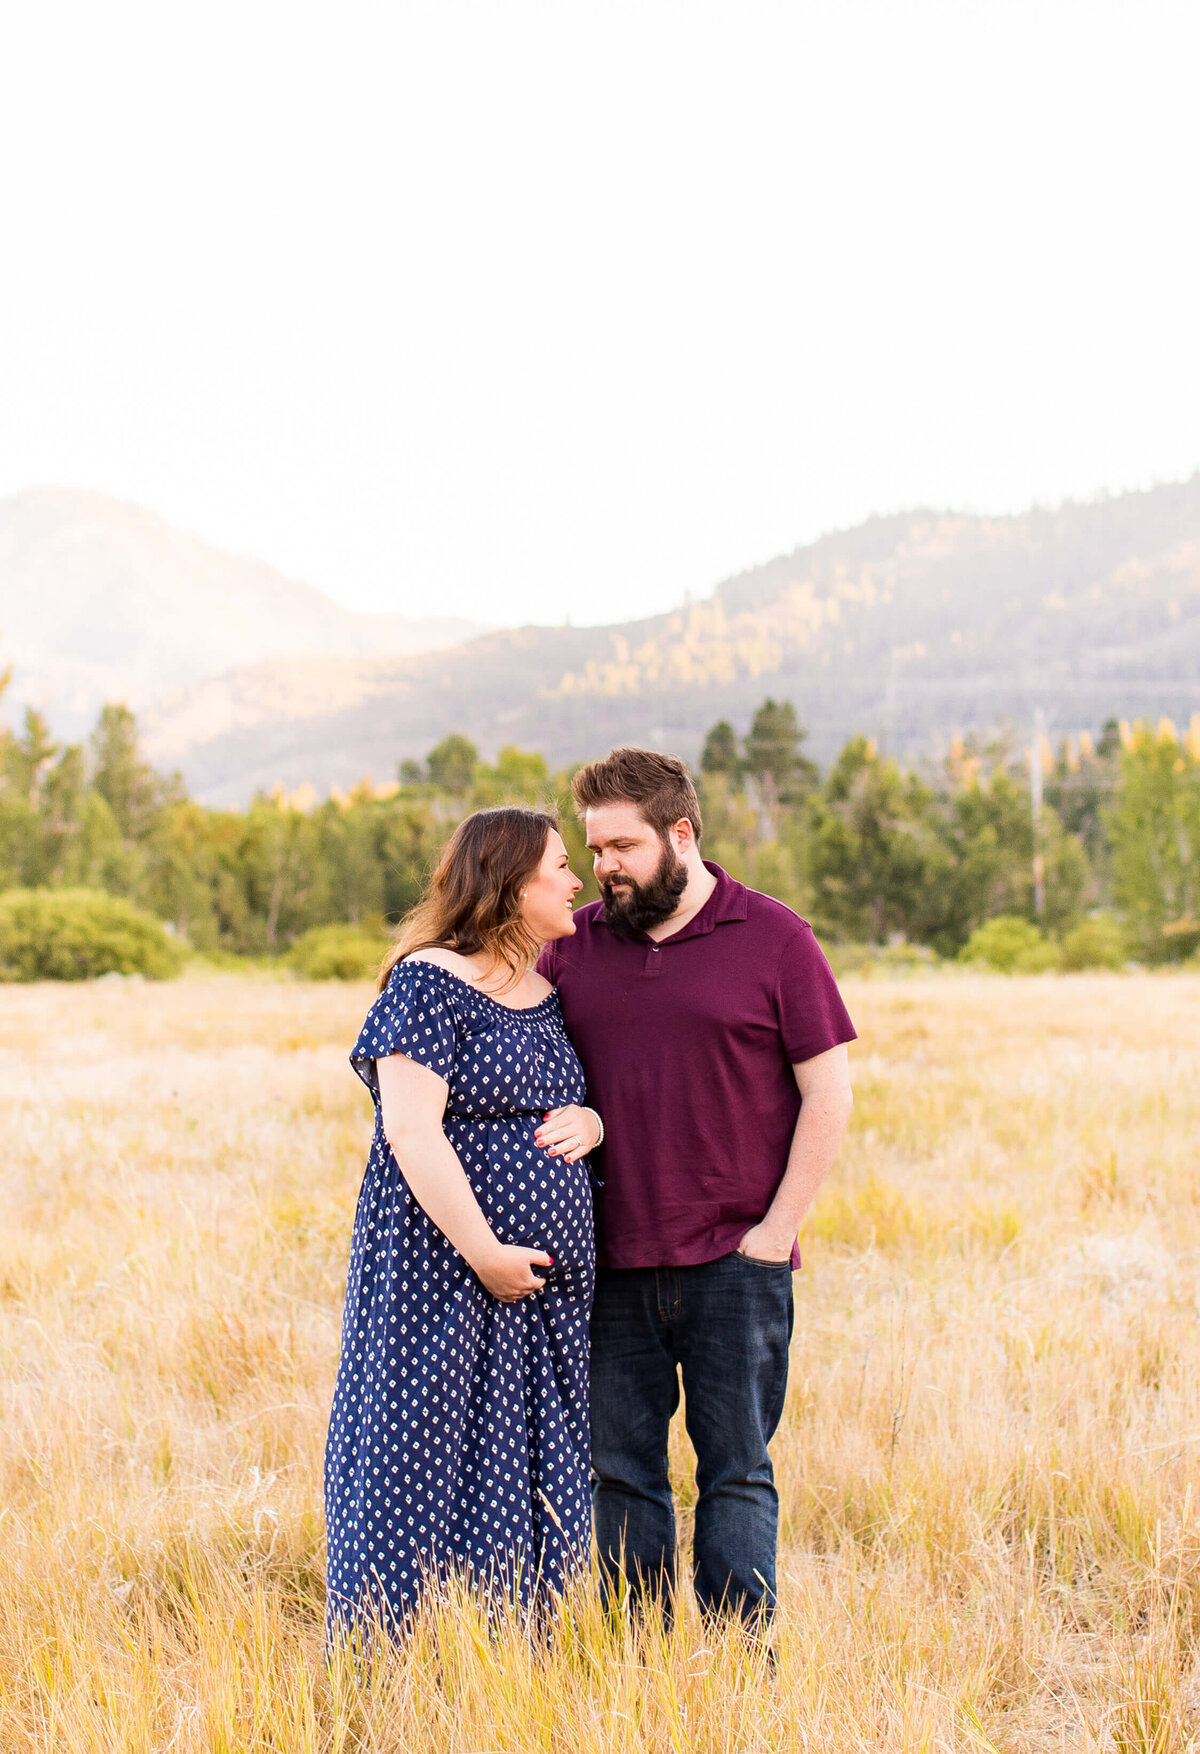 Ashley&JoelMaternitySession2020-12